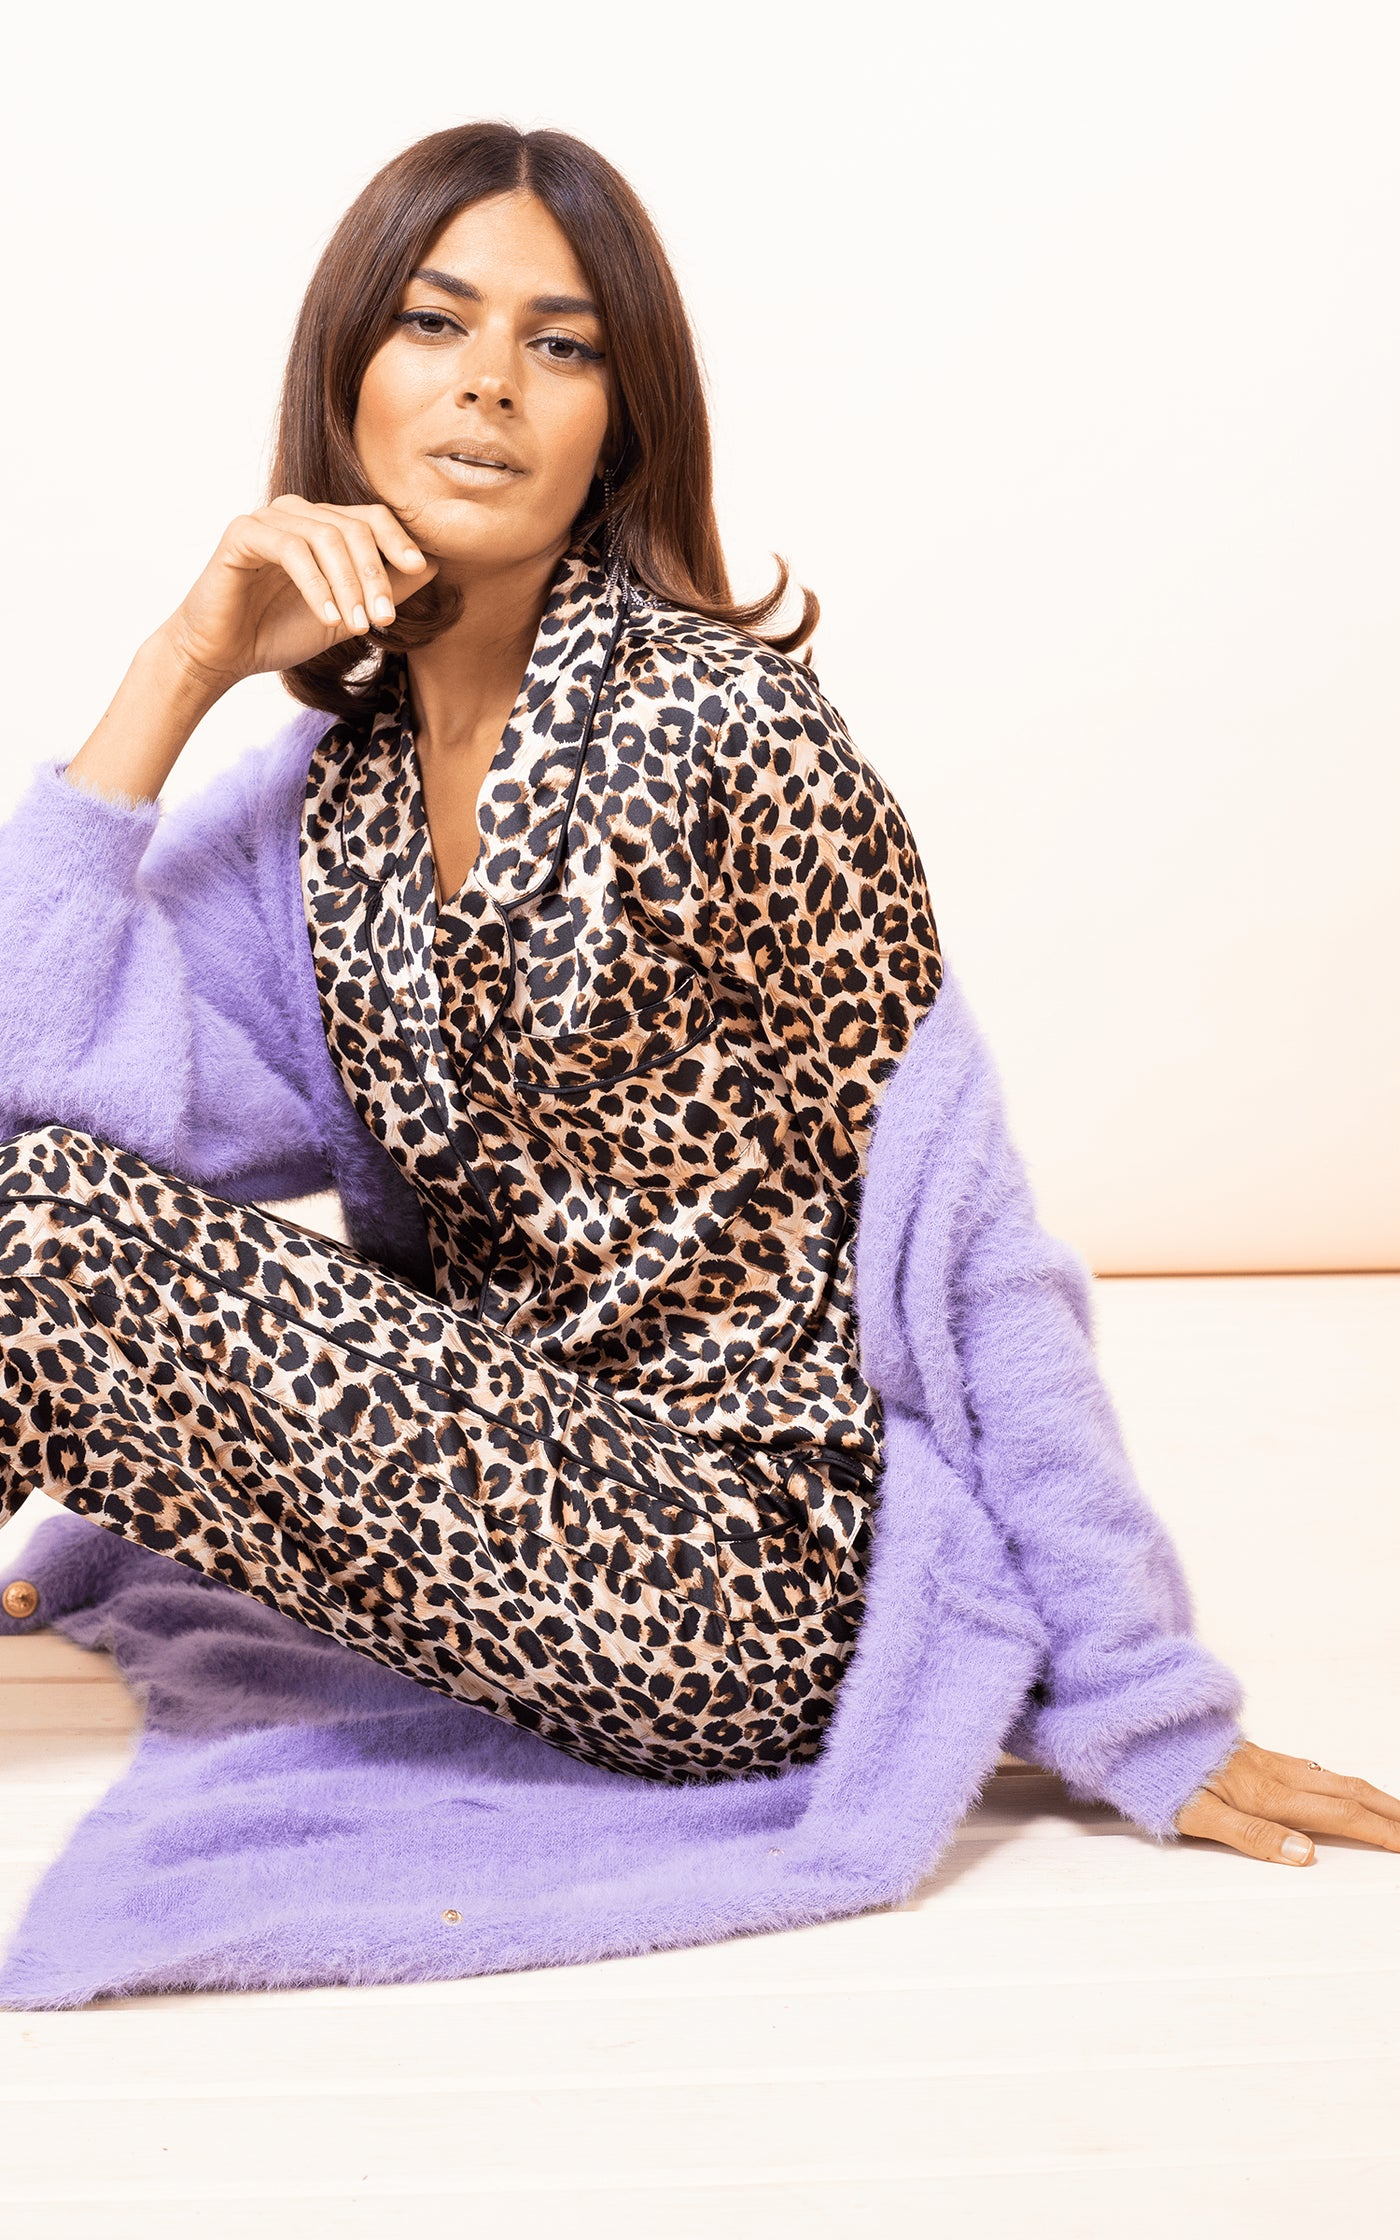 Dancing Leopard model sits on floor wearing Enya PJ Set in Rich Leopard print with purple cardigan and slippers